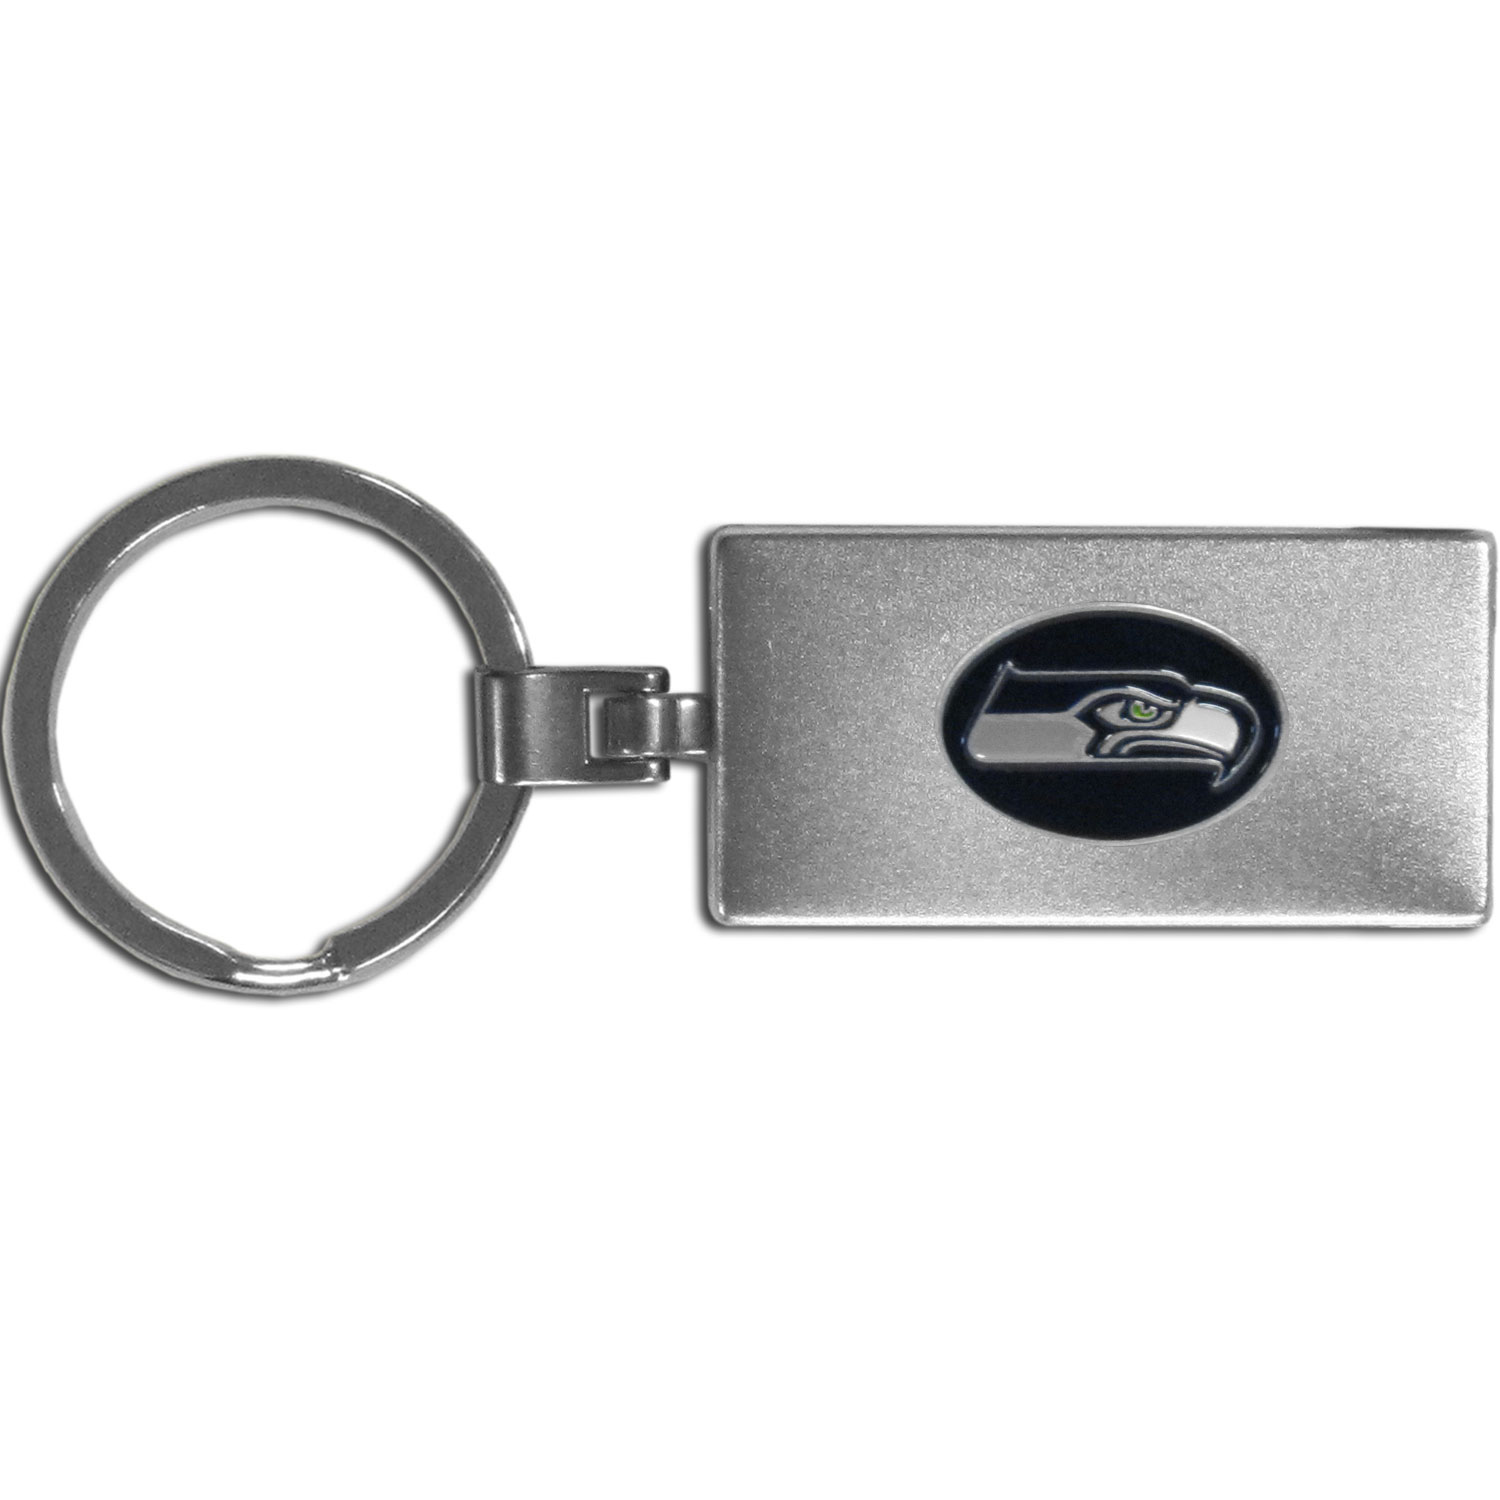 Seattle Seahawks Multi-tool Key Chain - Be the hero at the tailgate, camping, or on a Friday night with your Seattle Seahawks Multi-Tool Keychain which comes complete with bottle opener, scissors, knife, nail file and screw driver. Be it opening a package or a beverage Siskiyou's Multi-Tool Keychain goes wherever your keys do. The keychain hangs at 4 inches long when closed.